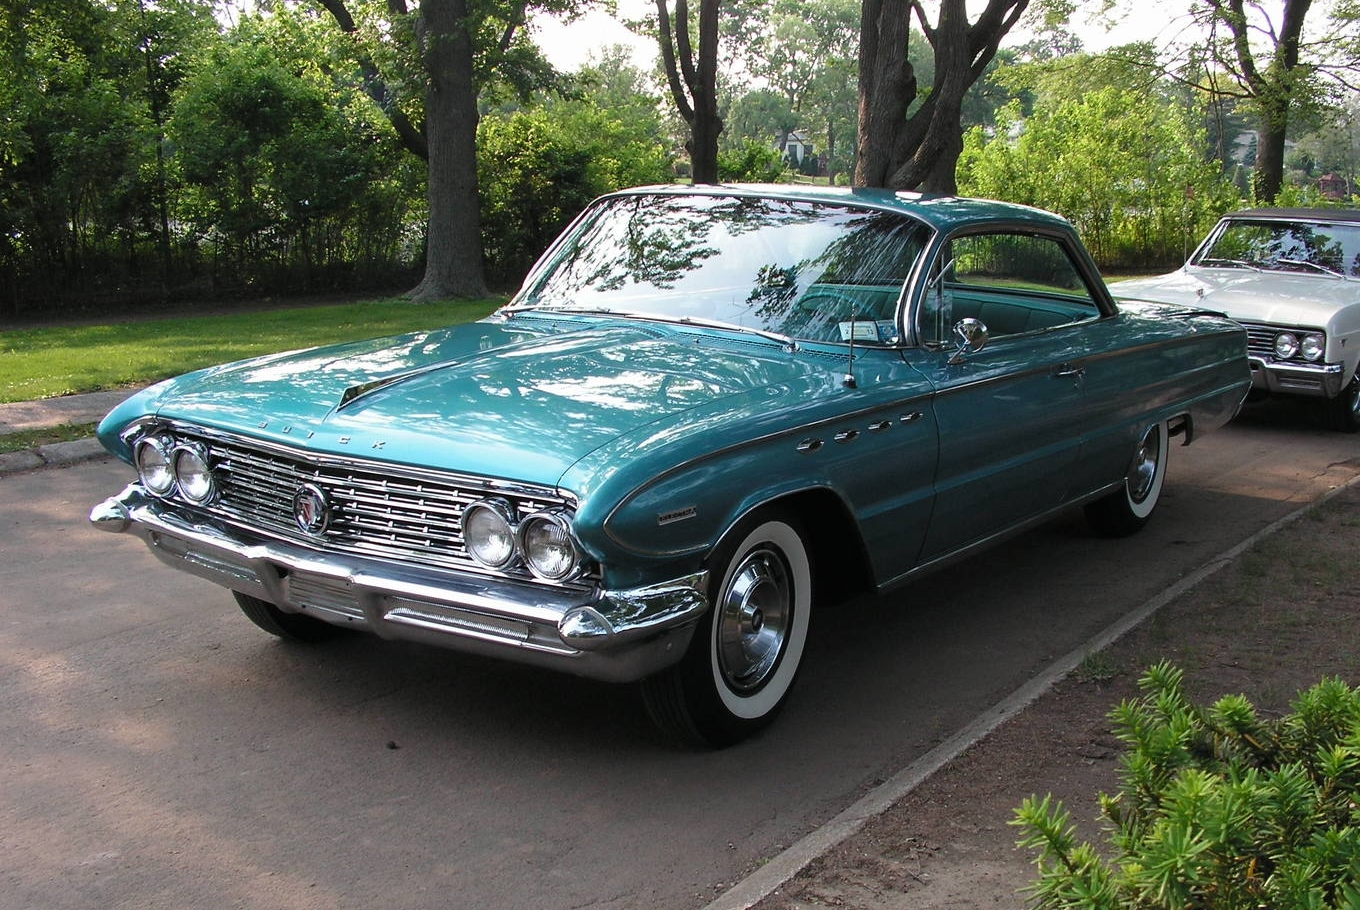 Eric Stoldt: 1961 Electra Hardtop Coupe